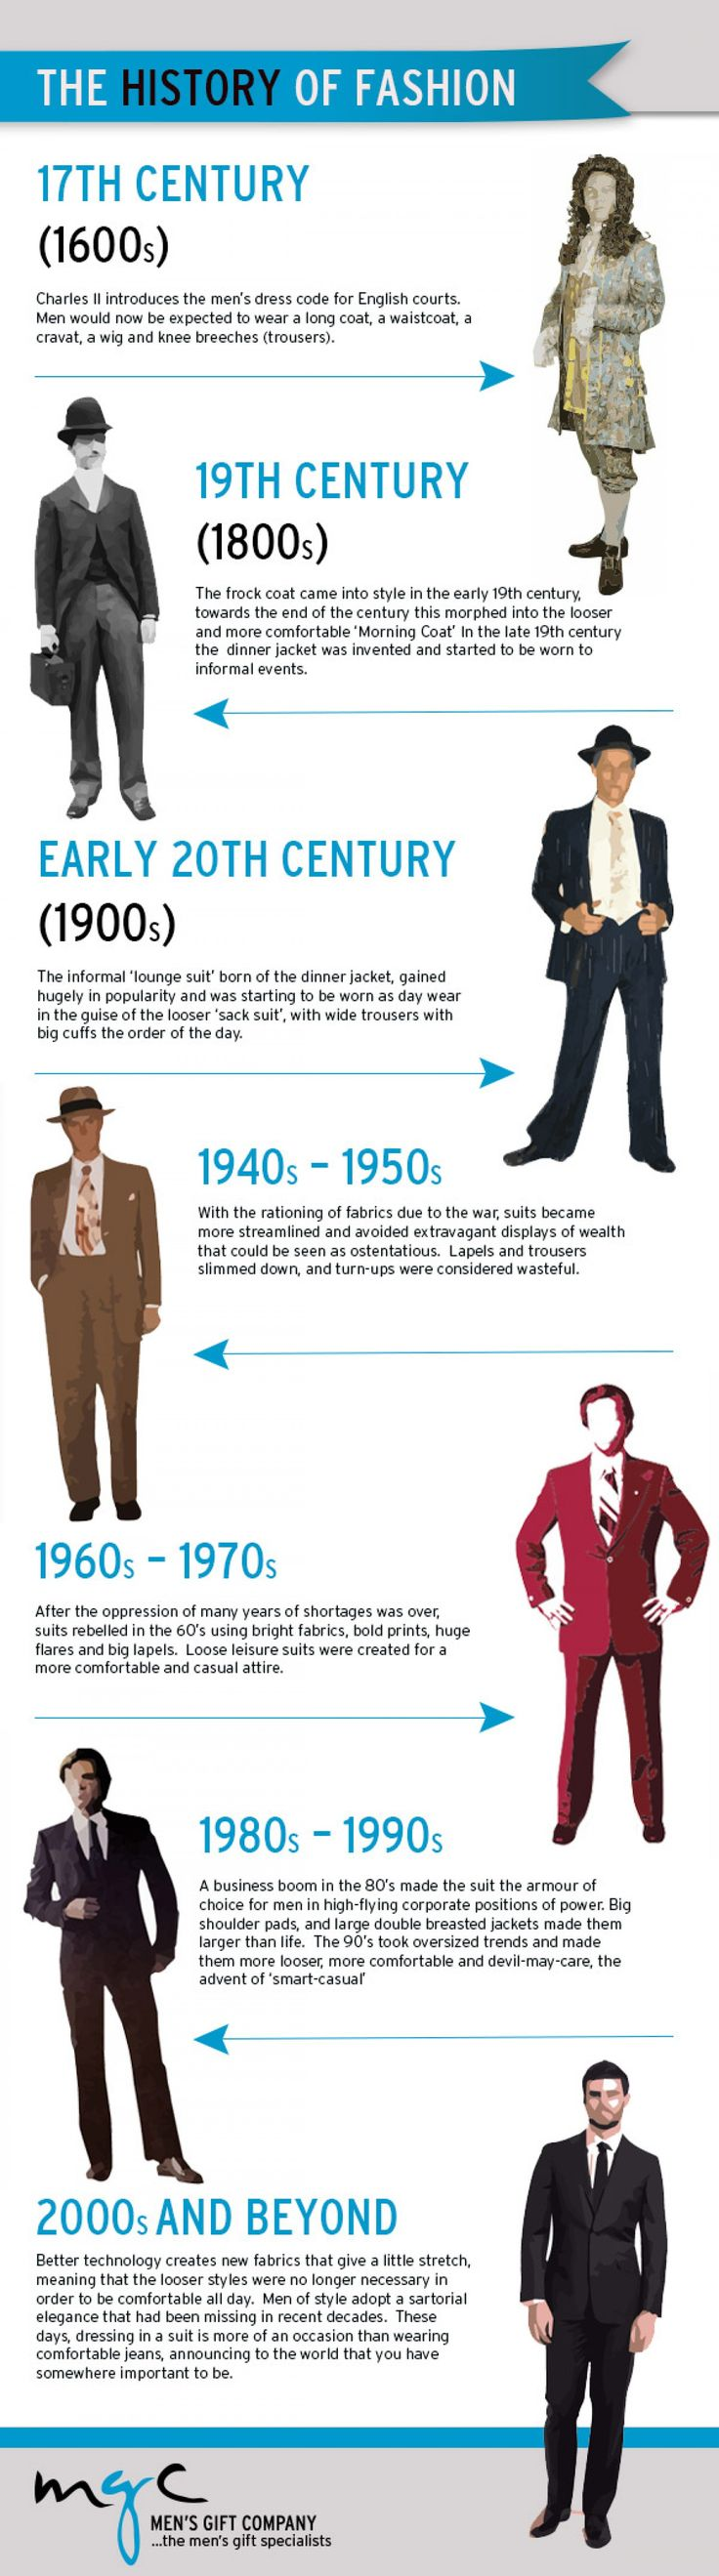 History of Men's Fashion #Infographic #MensFashion #Fashion